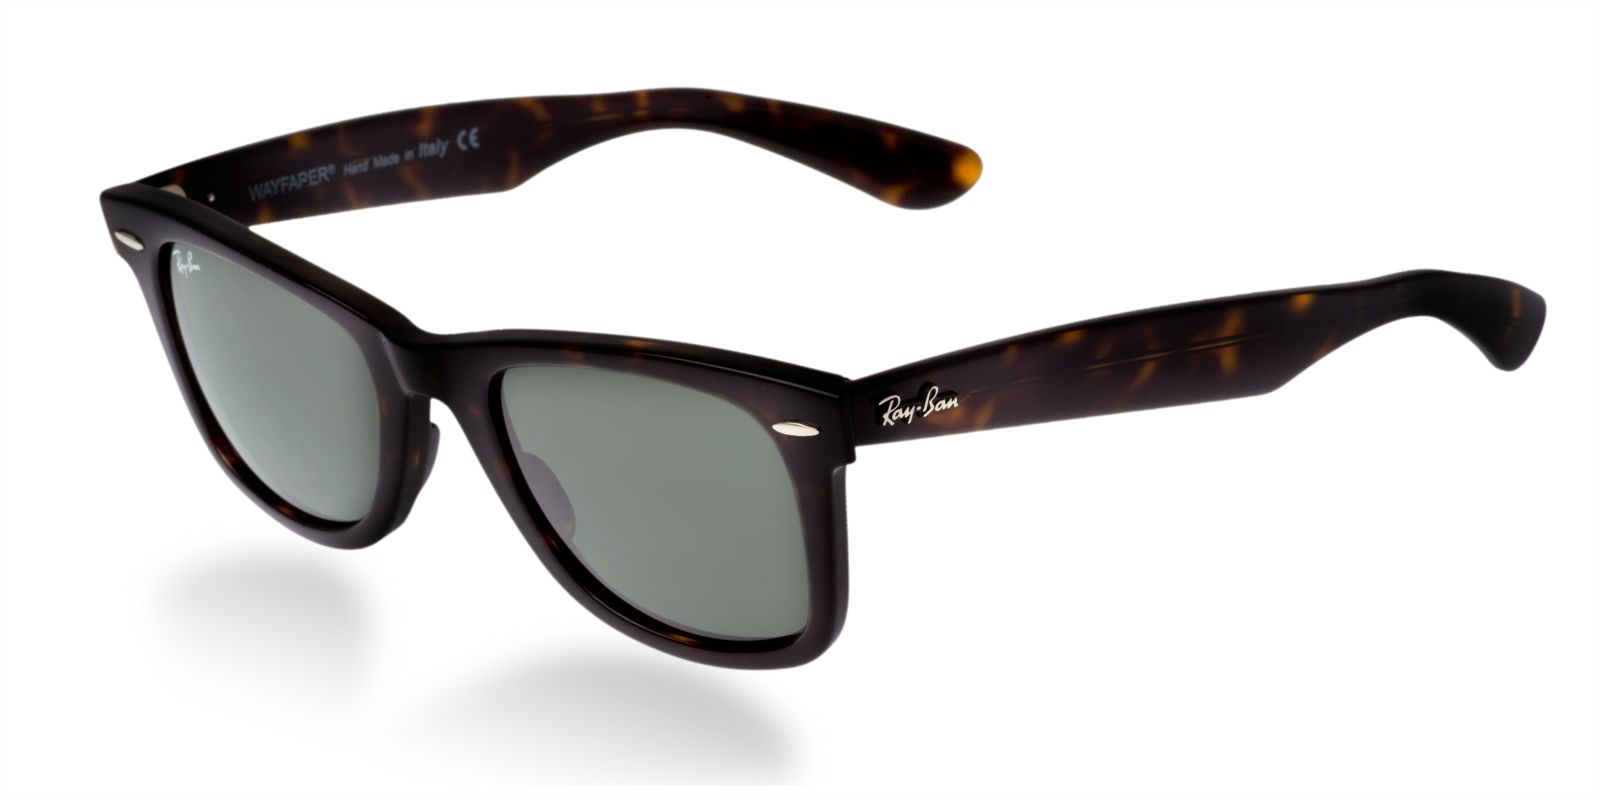 9cece823b4 Previous  Next. Previous  Next. RAY-BAN RB2140 902 TORTOISE CLASSIC  WAYFARER SUNGLASSES